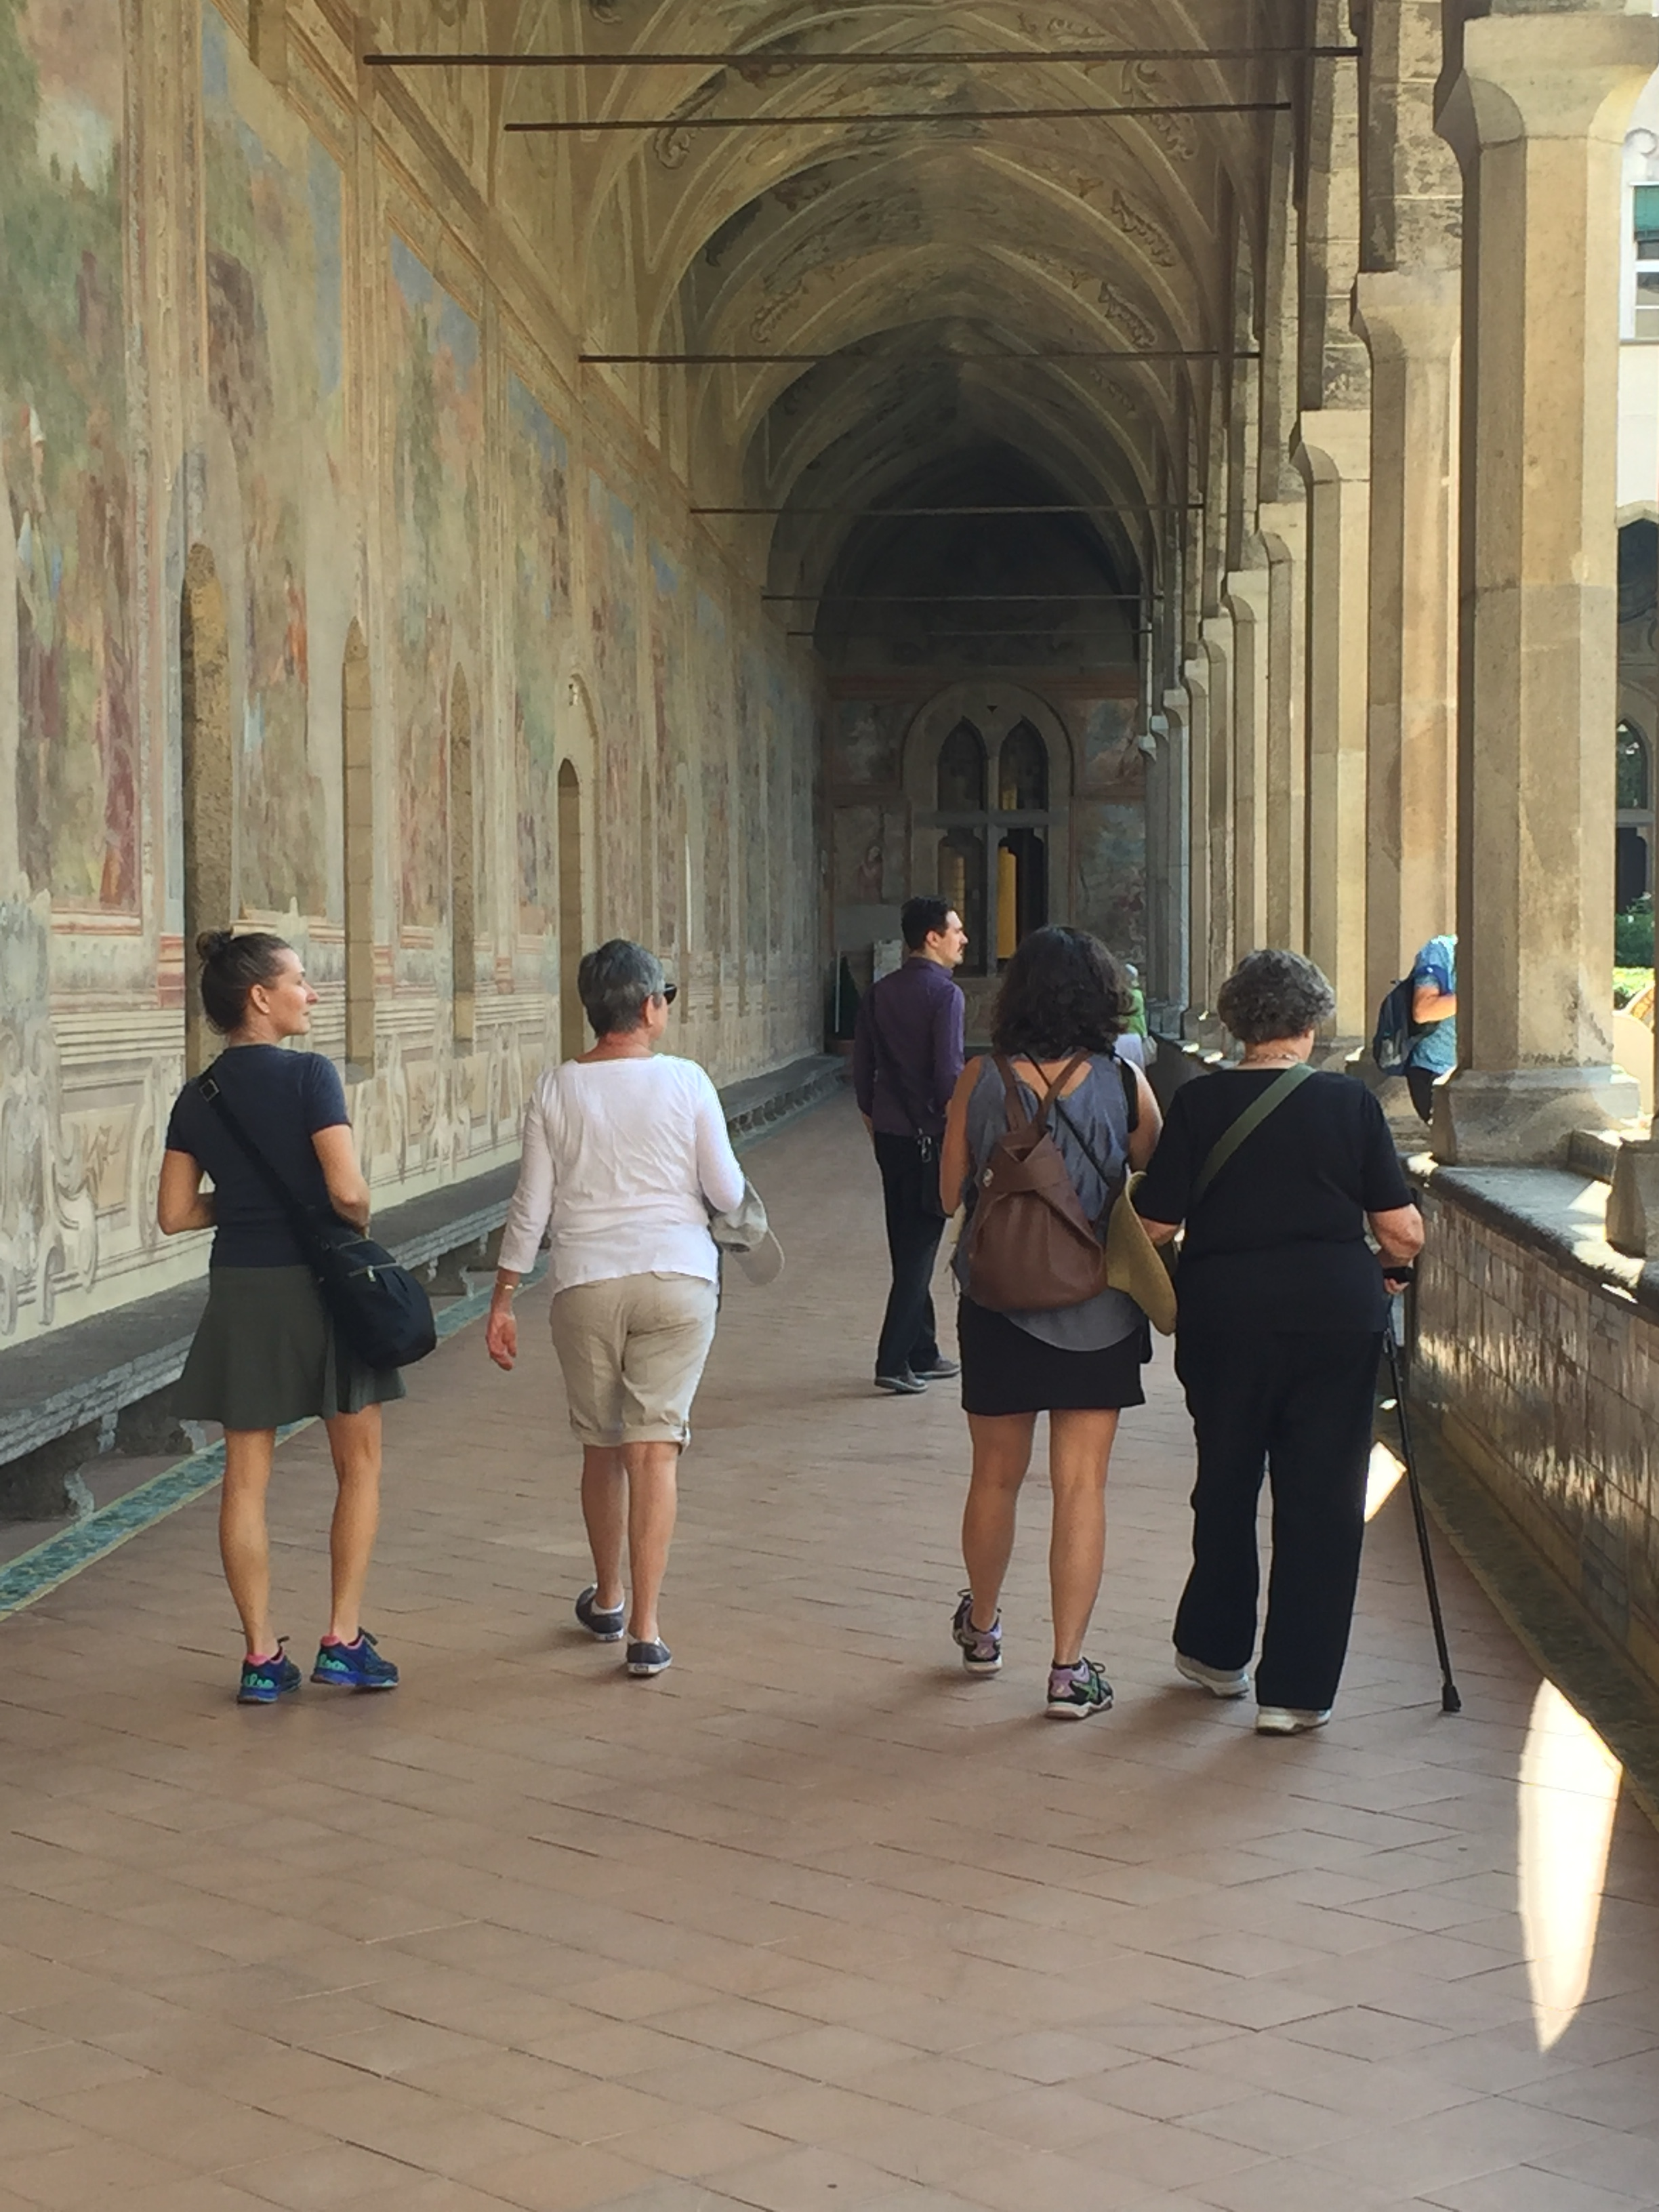 Inside the majolica cloister of Santa Chiara